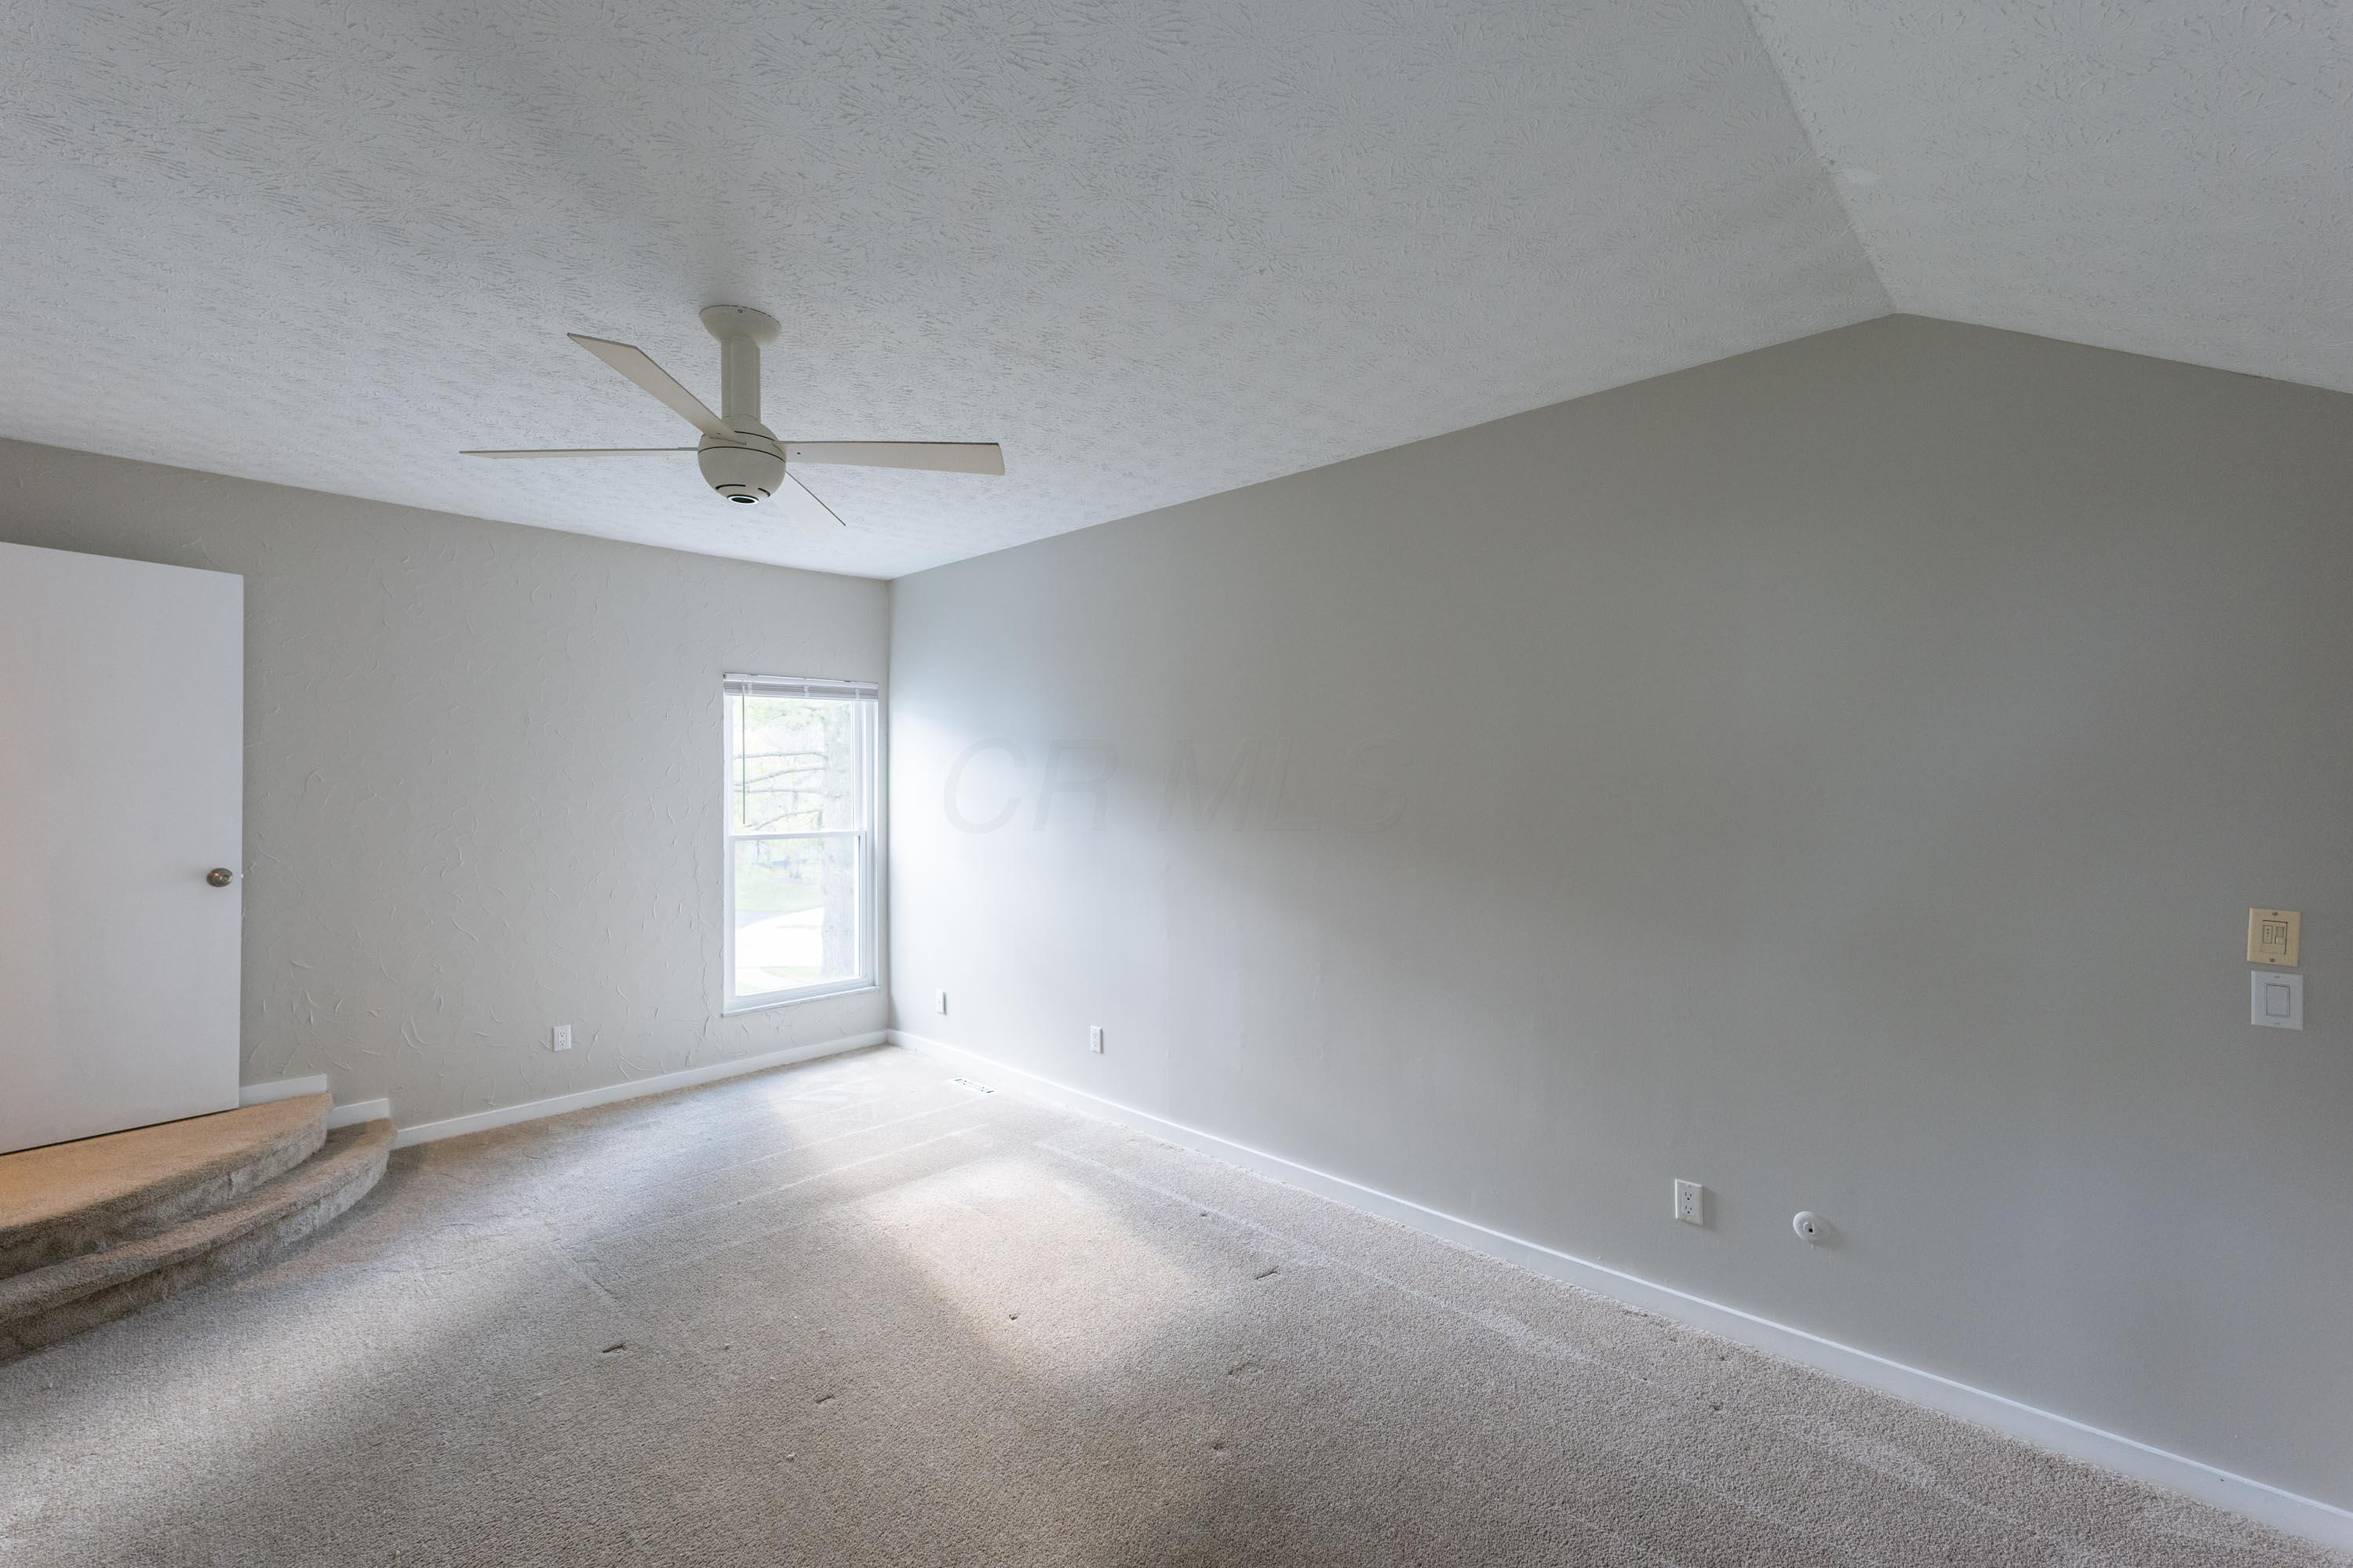 6344 Tamworth Court, Dublin, Ohio 43017, 2 Bedrooms Bedrooms, ,2 BathroomsBathrooms,Residential,For Sale,Tamworth,220040697